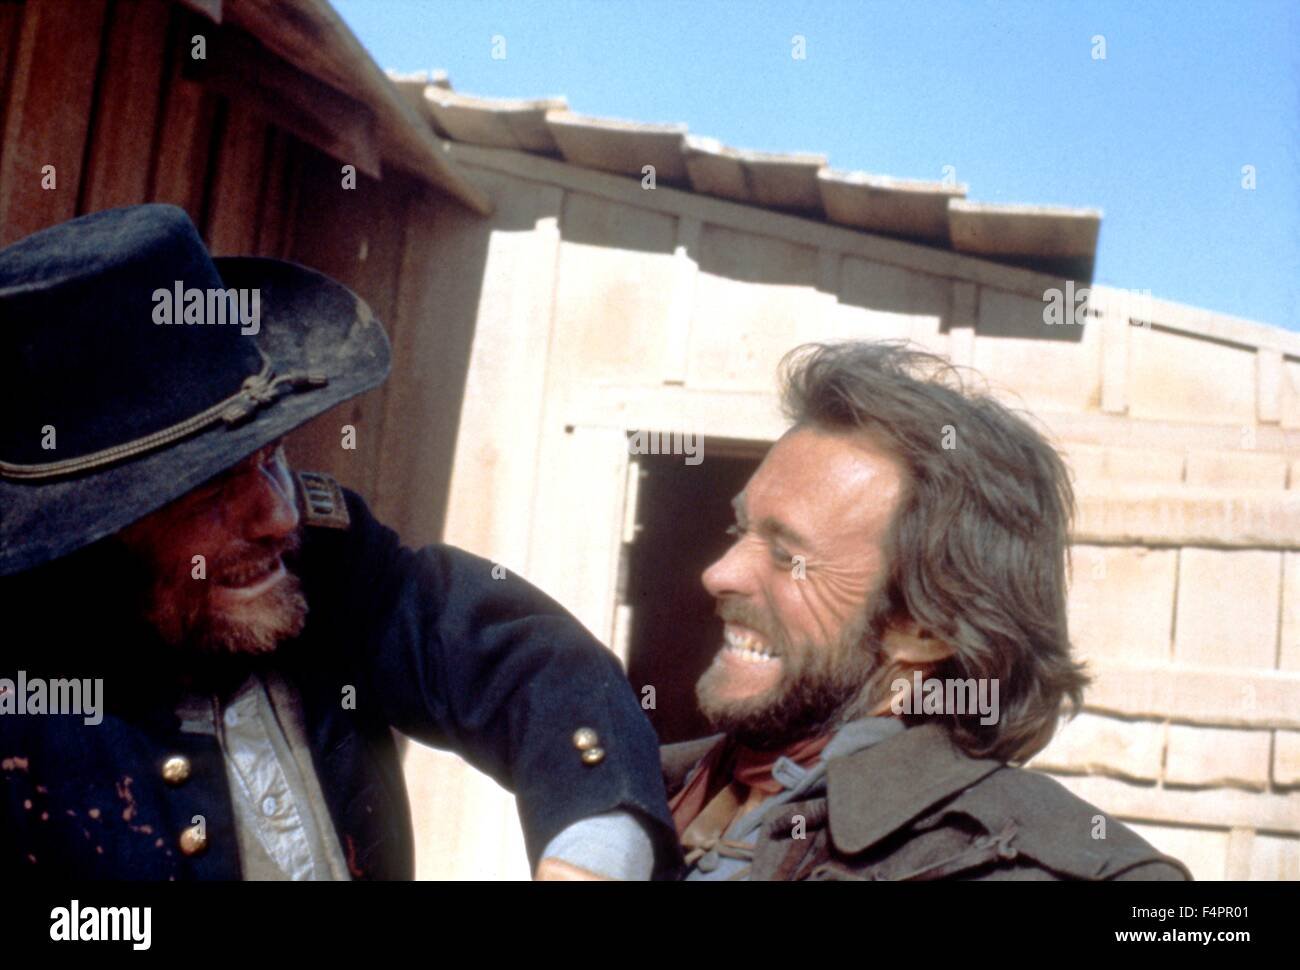 Bill McKinney and Clint Eastwood / The Outlaw Josey Wales / 1976 directed by Clint Eastwood  [Warner Bros. Pictures] - Stock Image